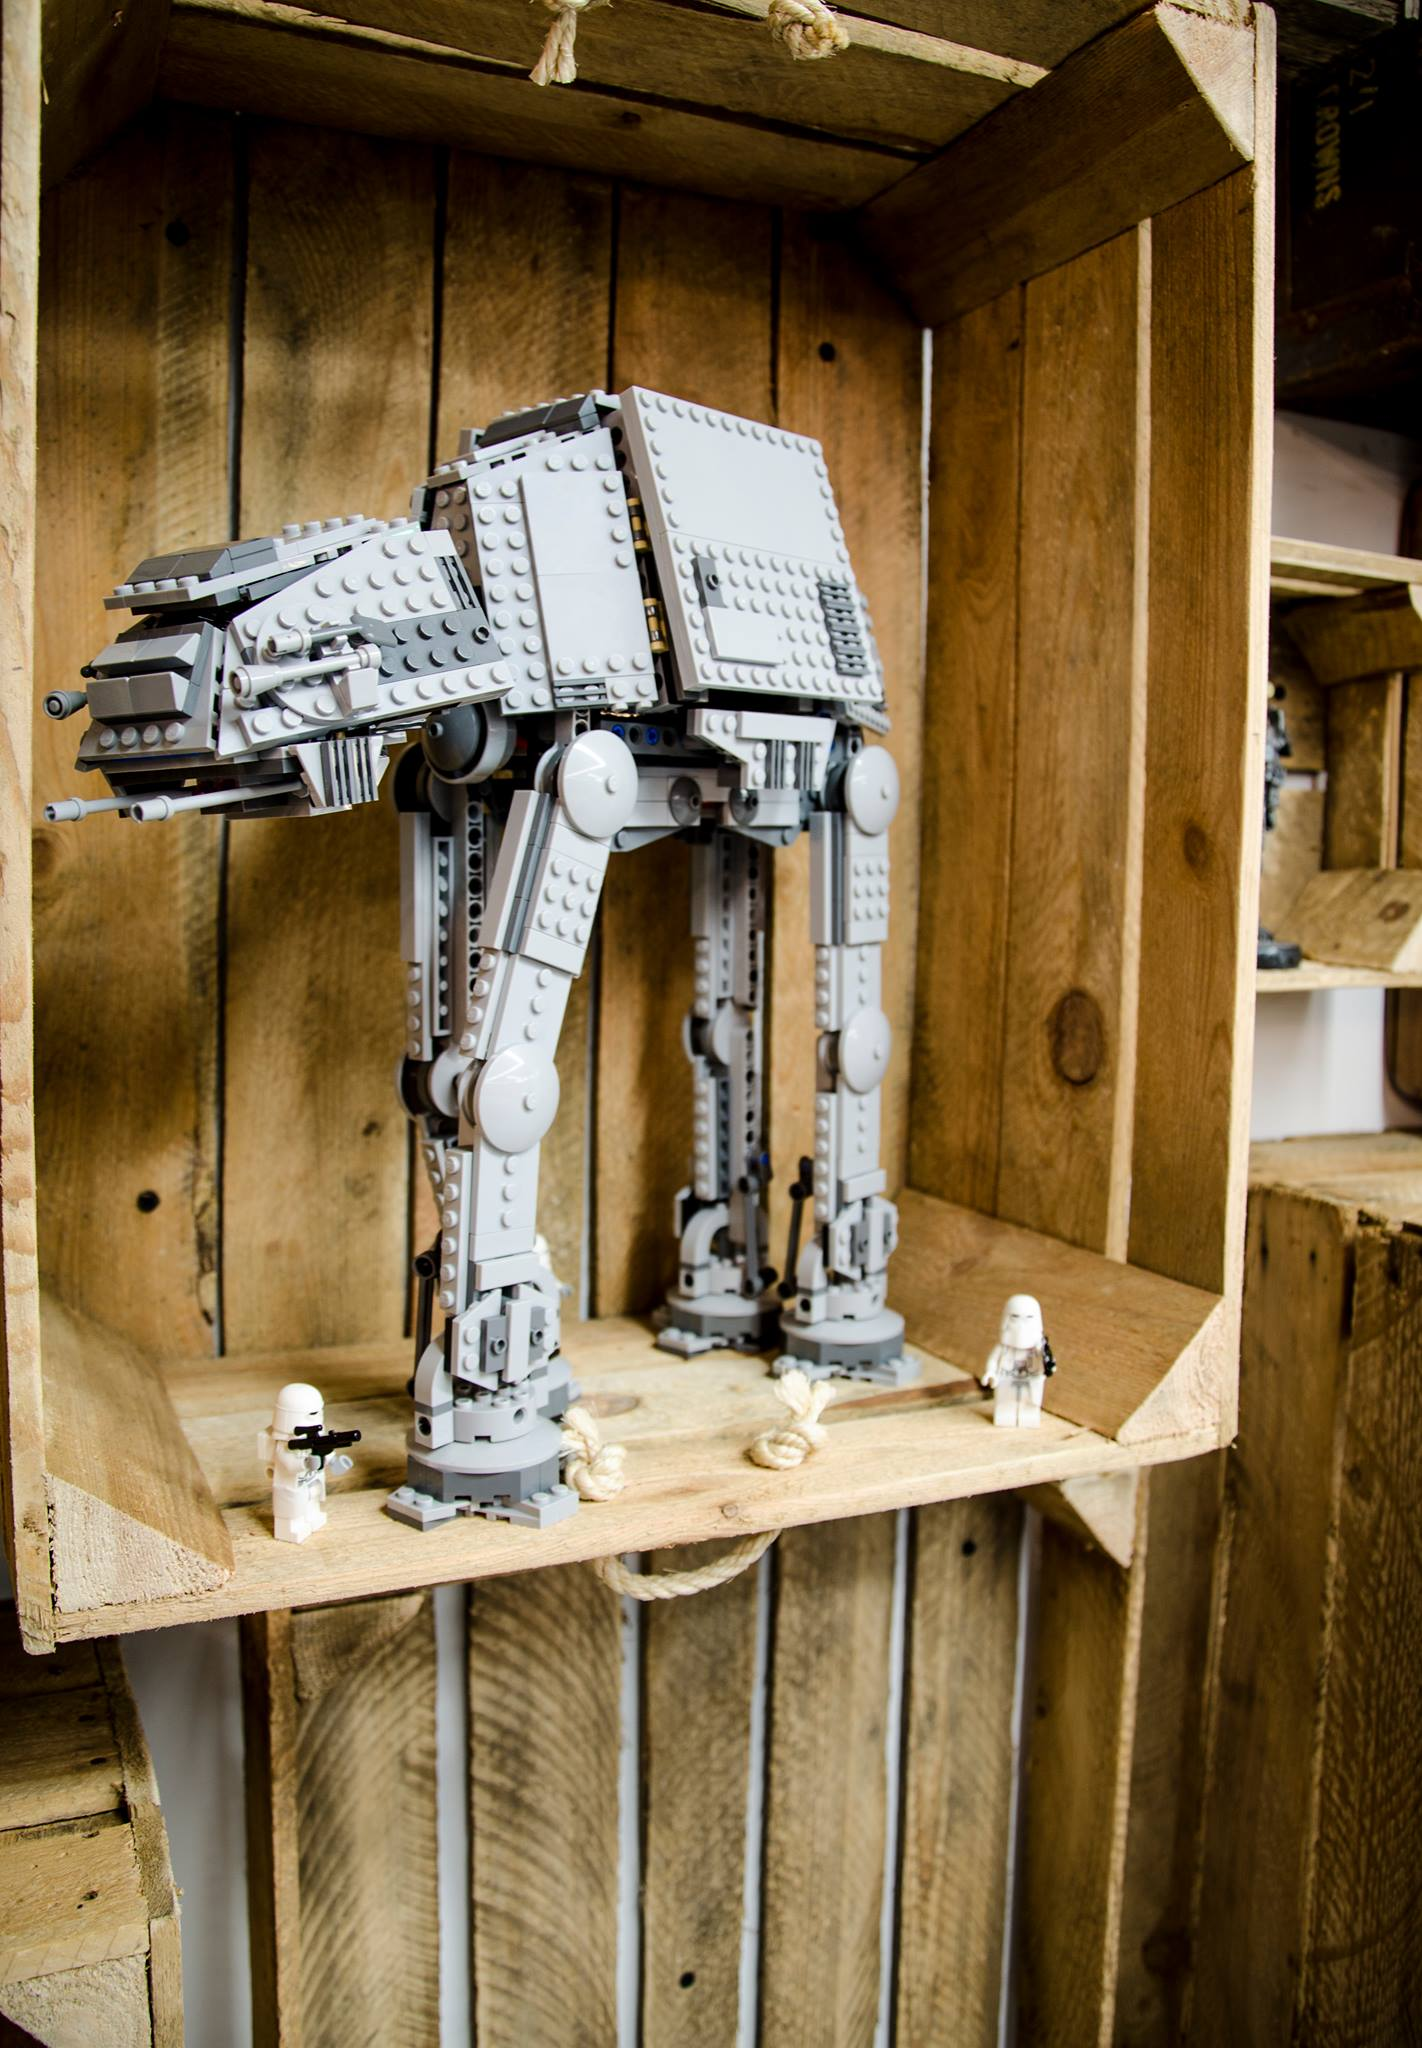 Lego AT-AT walker